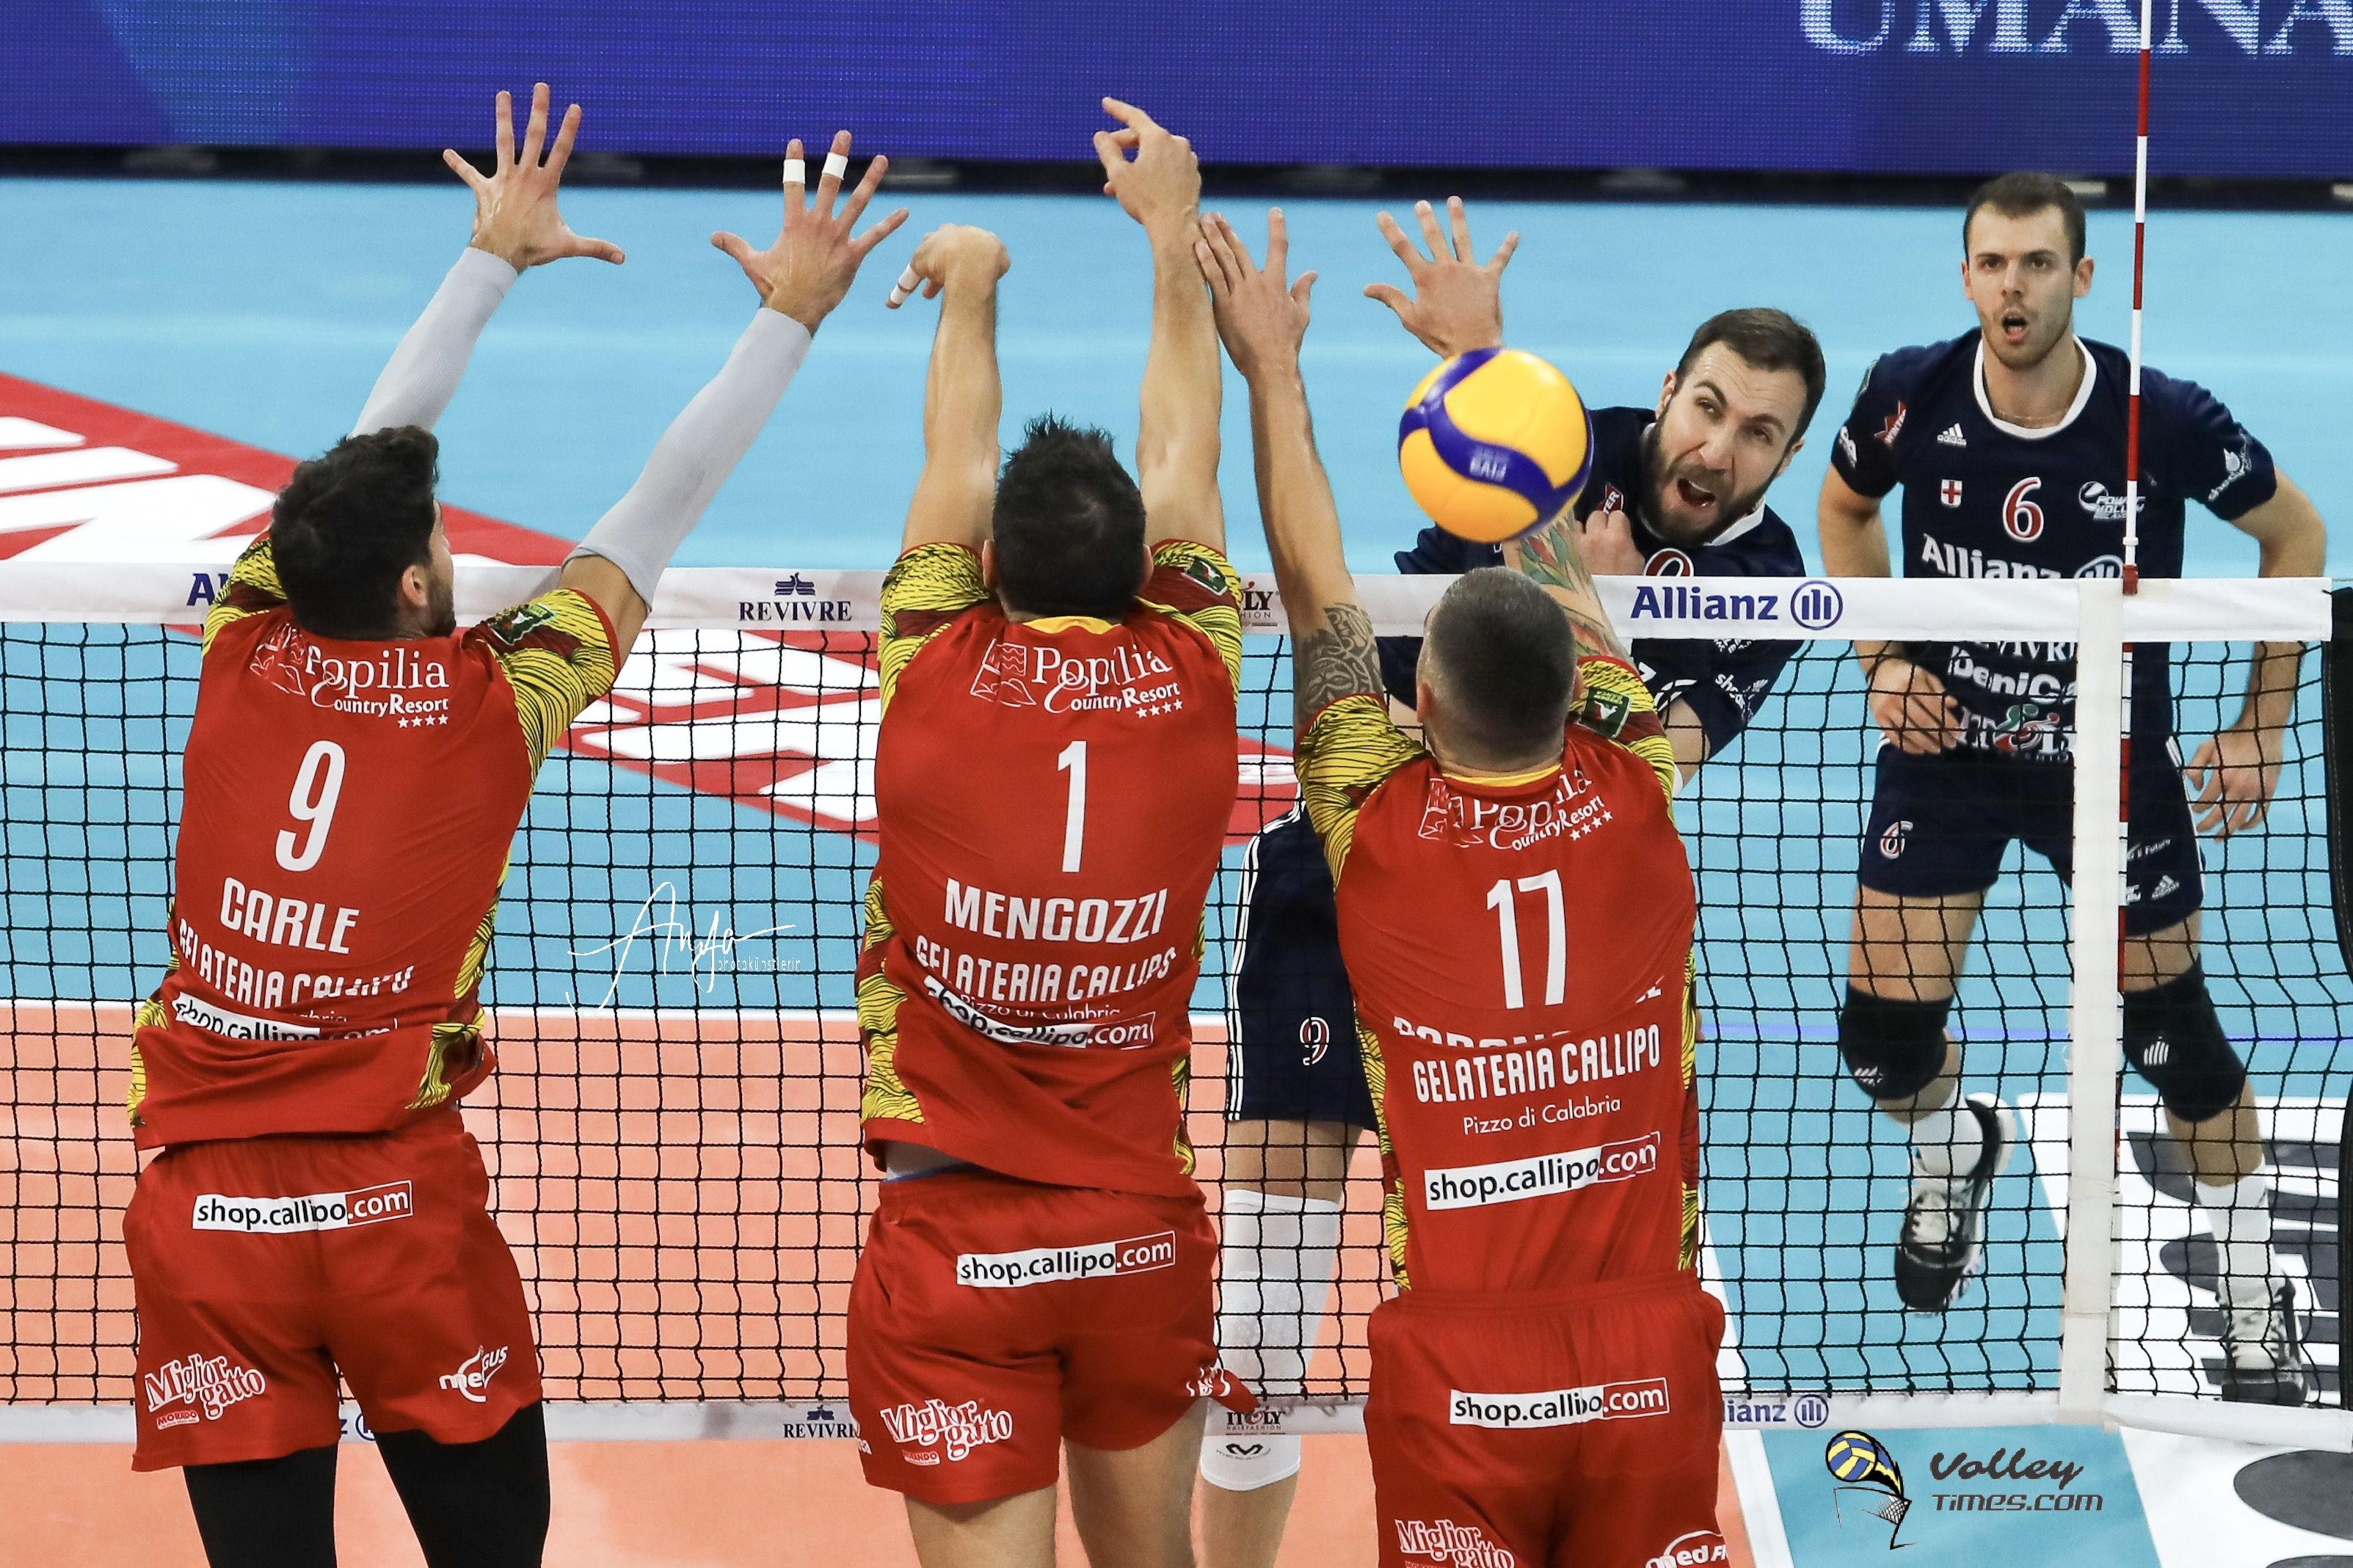 Italy: with a 3-1 victory over Vibo Valentia, Milano takes its first home victory in the postponement of Round 9